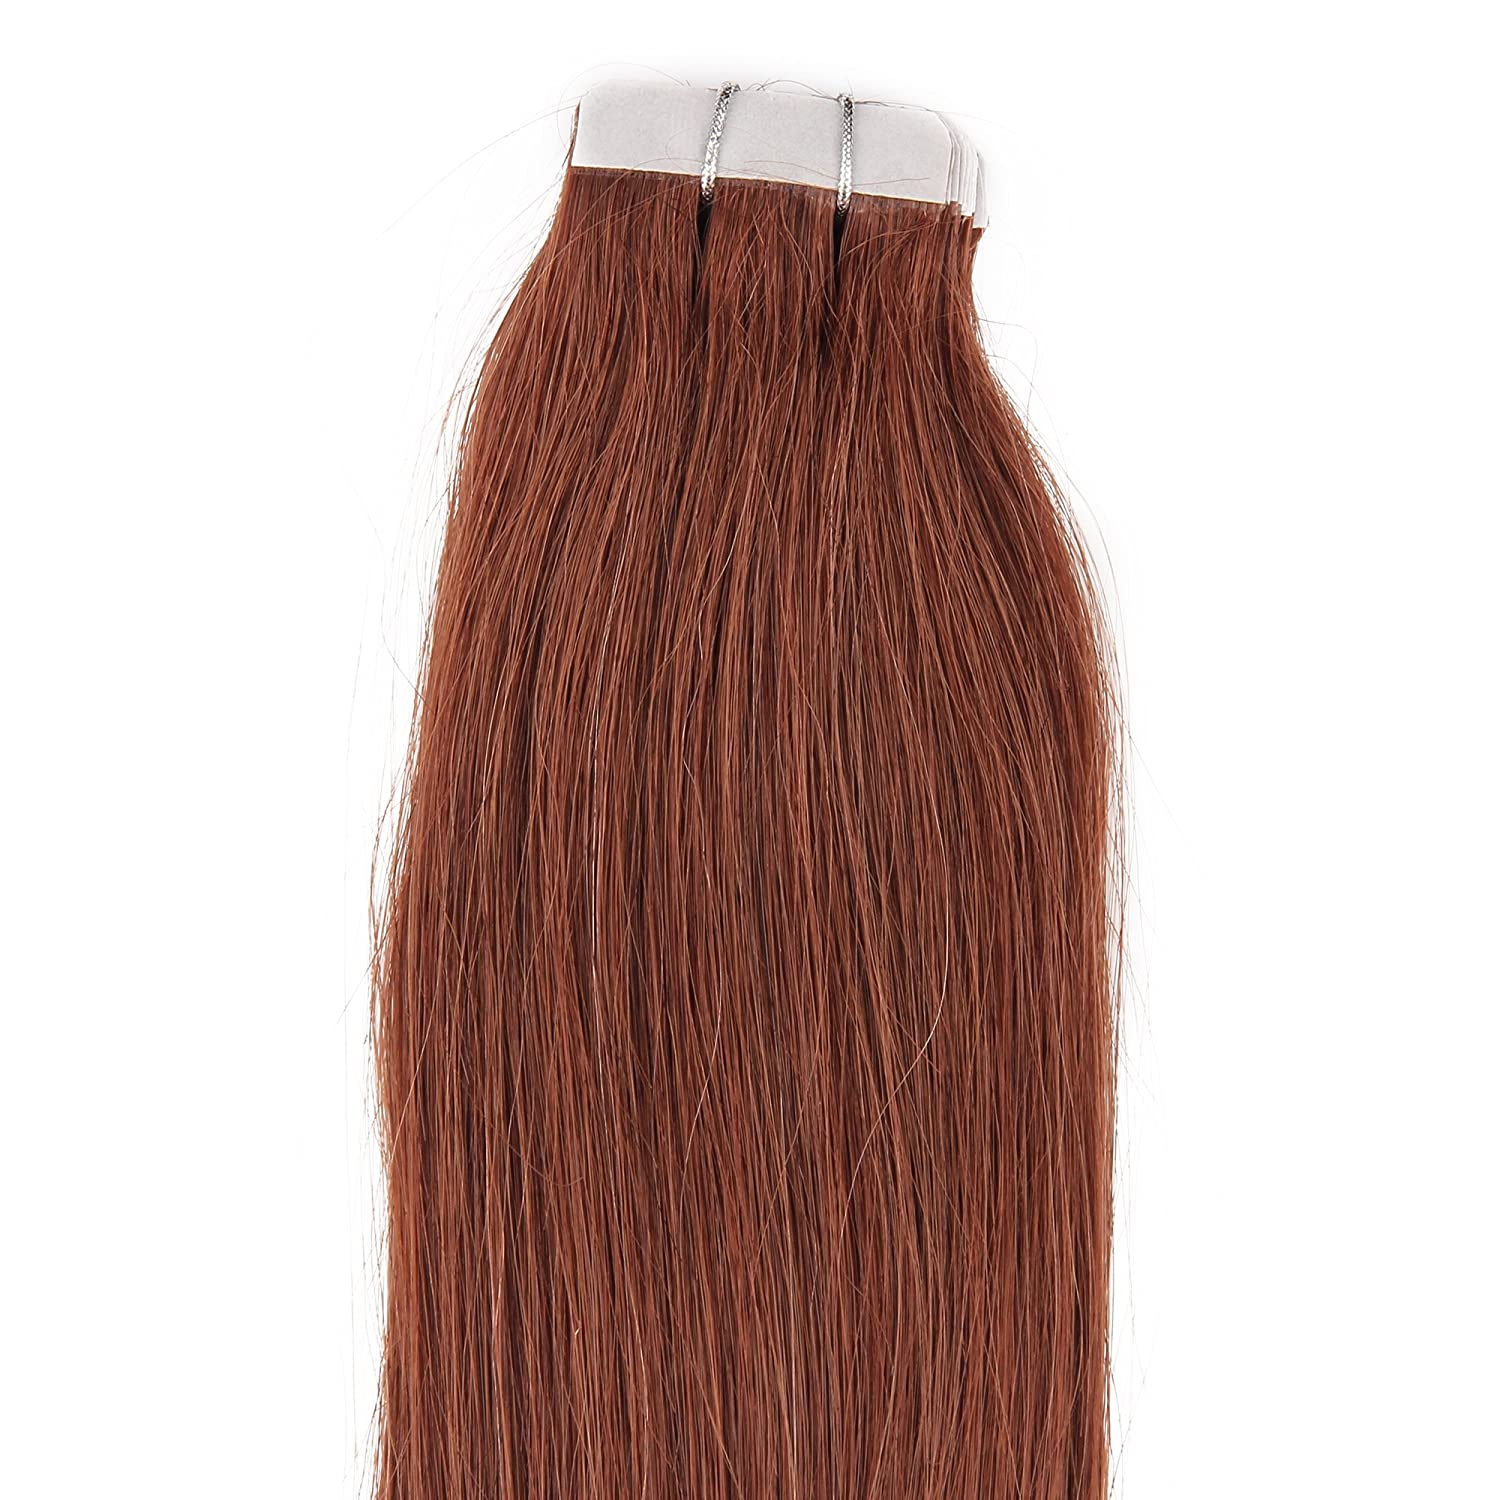 Amazon 16182022 24 tape in real human hair amazon 16182022 24 tape in real human hair extensions straight 17 colors 20pcs beauty hair style 16inch 30g 20pcs 02 dark brown pmusecretfo Gallery